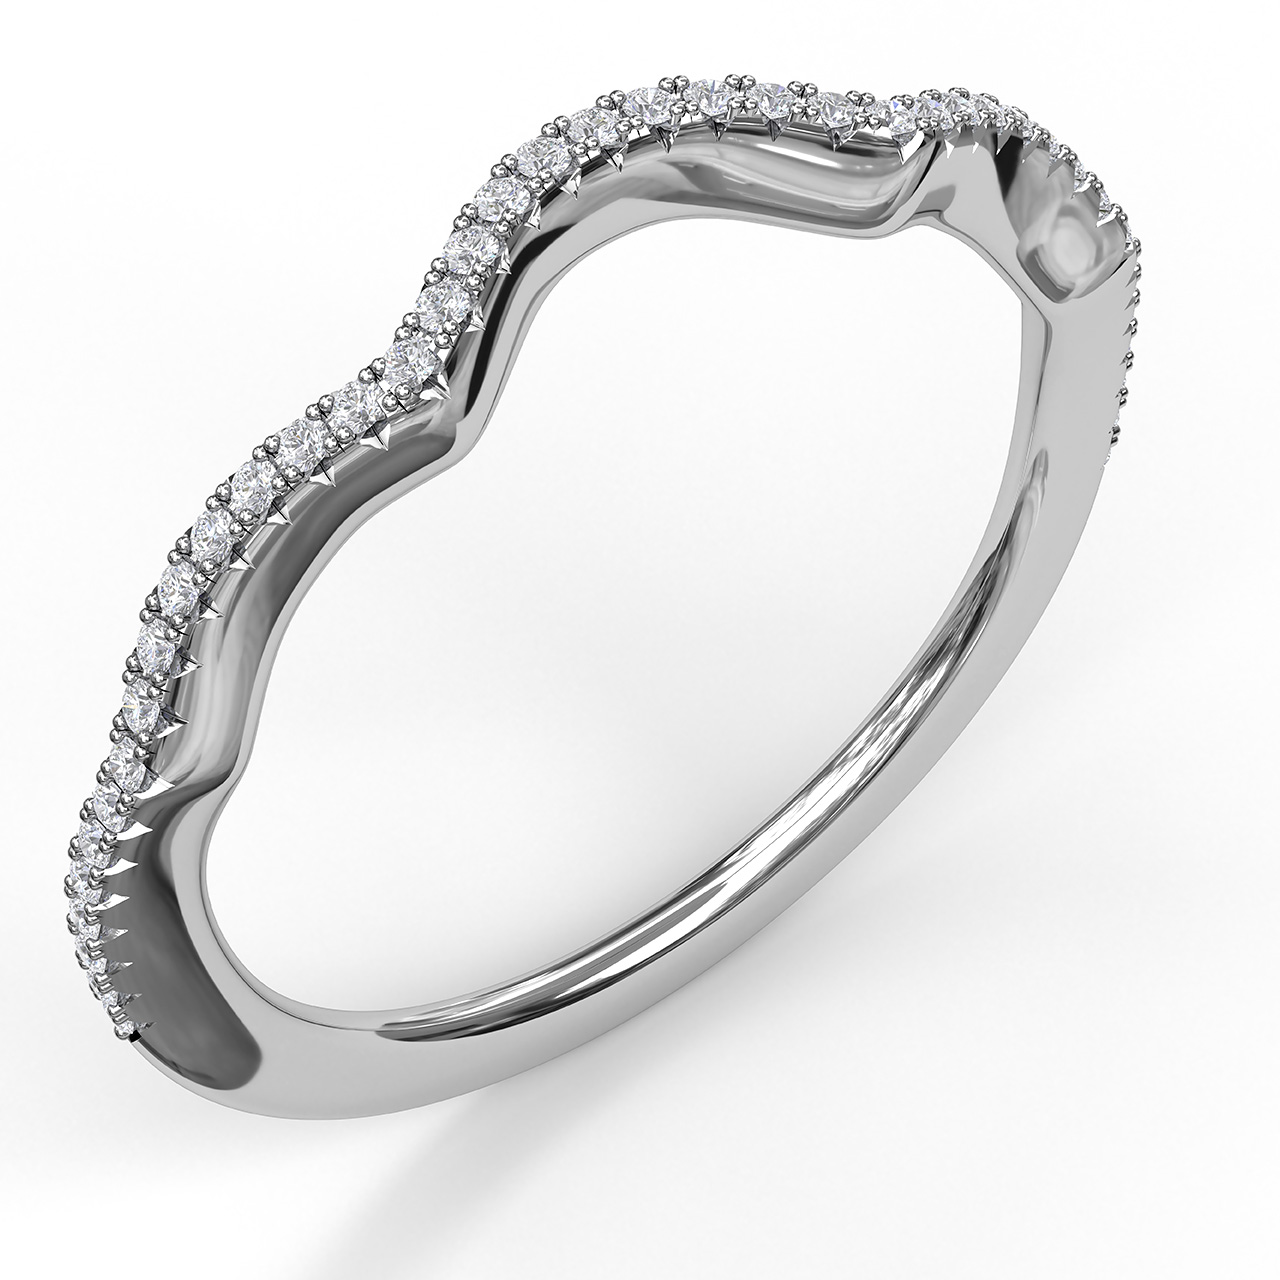 Women's Wedding Bands - Diamond Wedding Band - image #3